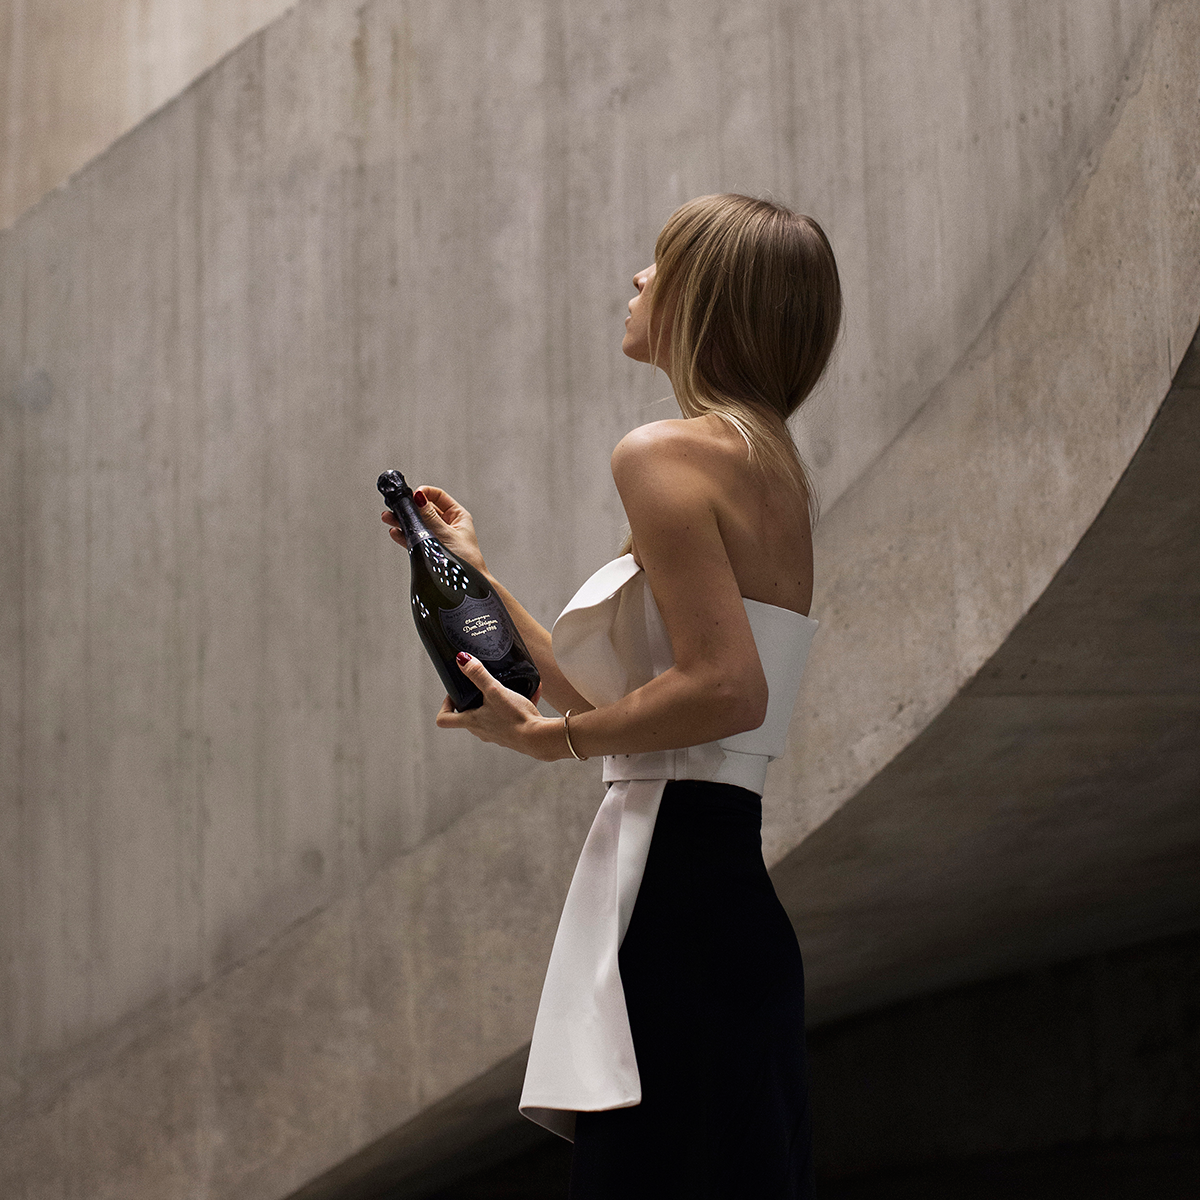 DOM PÉRIGNON - We activated a squad of influencers to enhance vintage cuvées in stylish scenes.